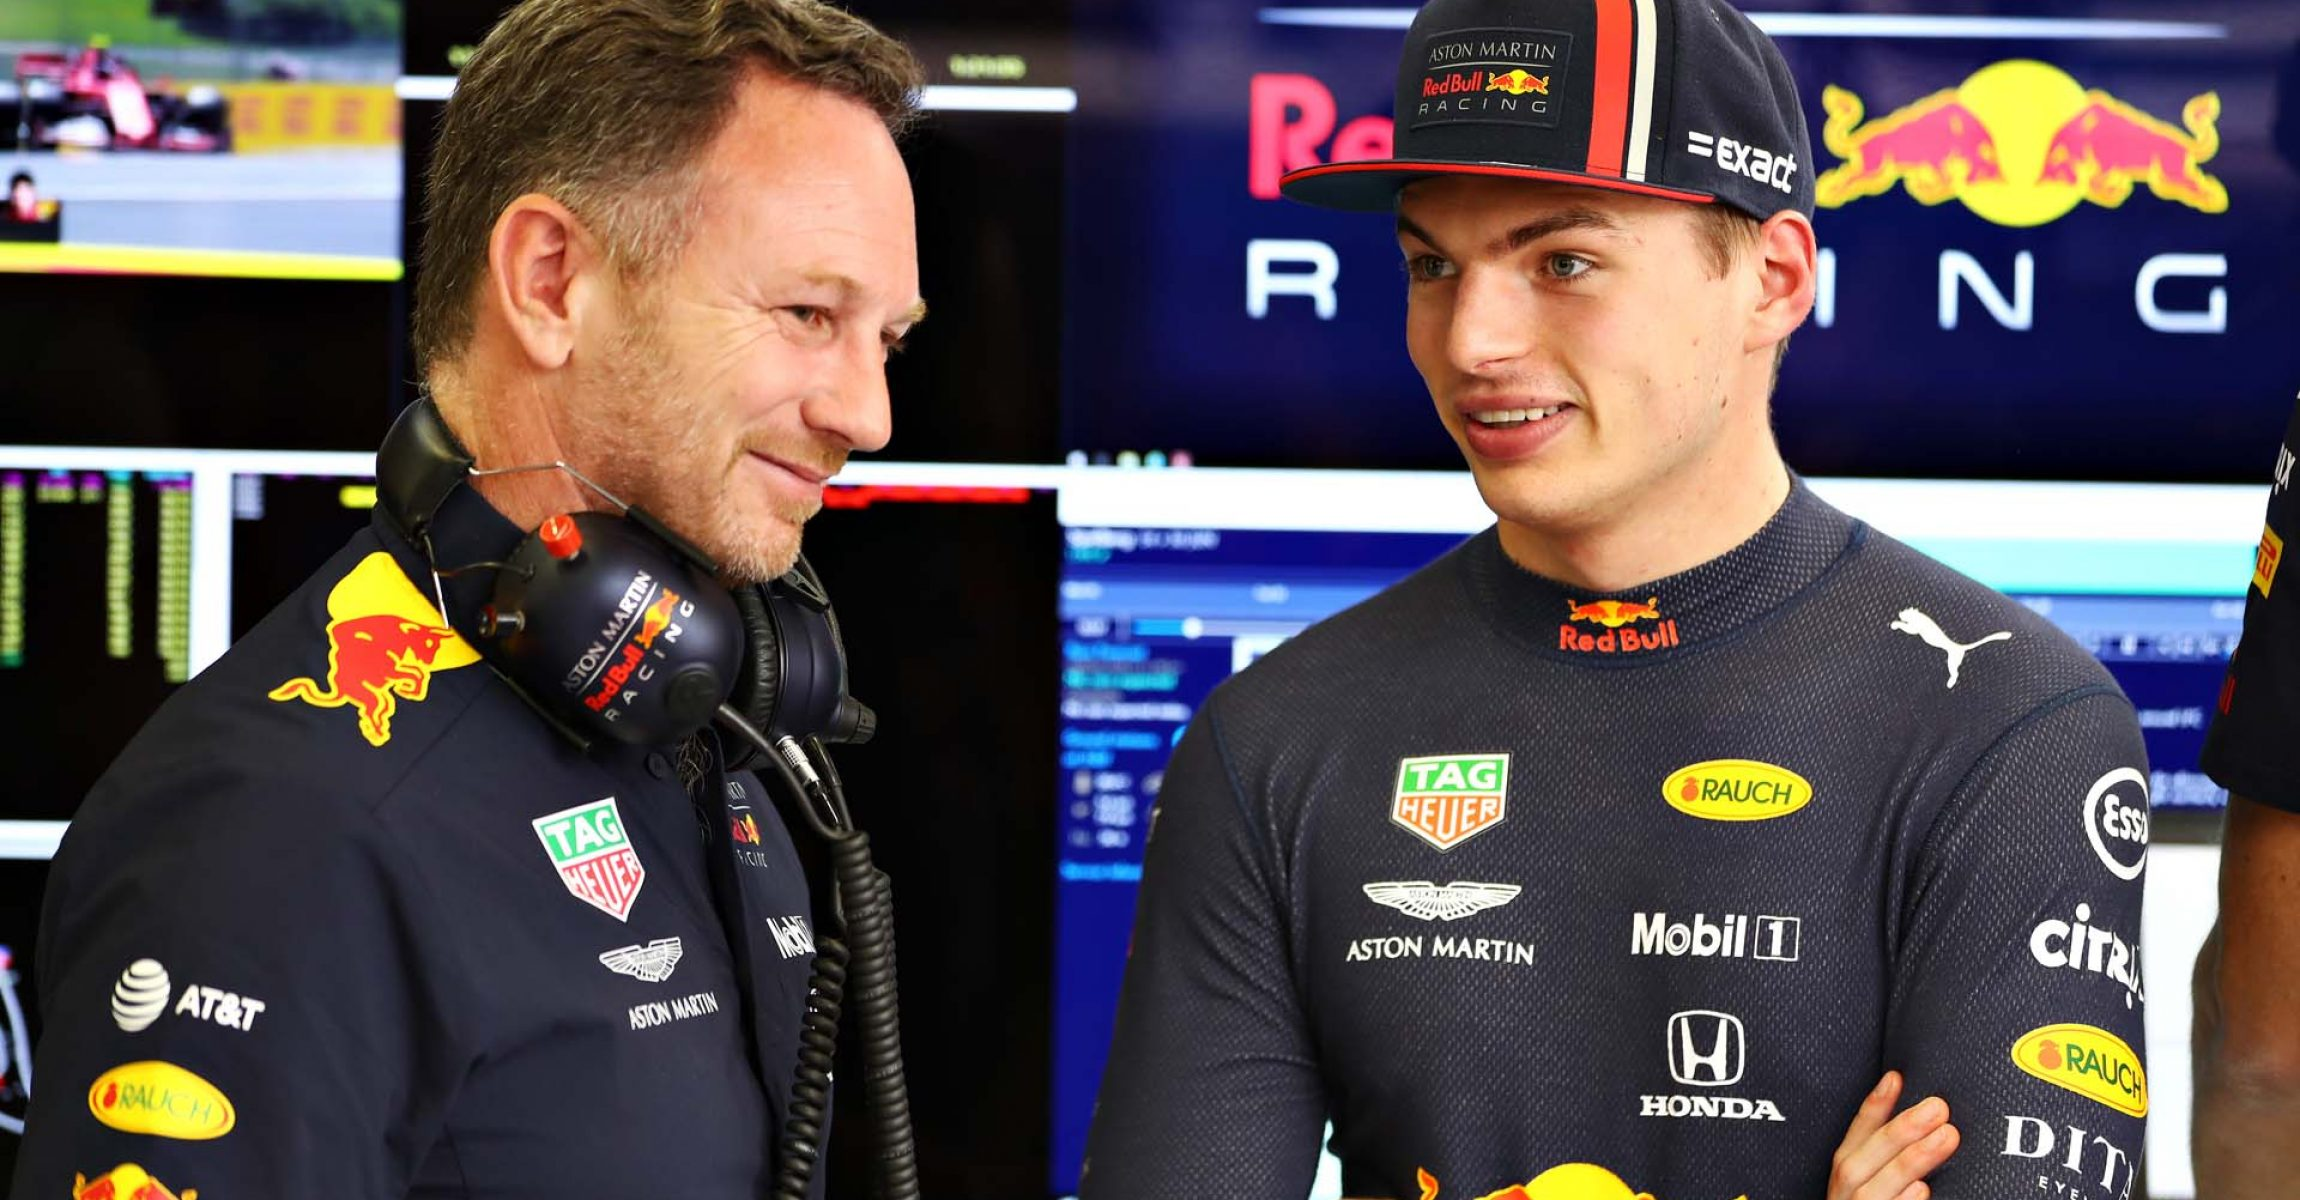 SPIELBERG, AUSTRIA - JUNE 28: Max Verstappen of Netherlands and Red Bull Racing talks with Red Bull Racing Team Principal Christian Horner in the garage during practice for the F1 Grand Prix of Austria at Red Bull Ring on June 28, 2019 in Spielberg, Austria. (Photo by Mark Thompson/Getty Images) // Getty Images / Red Bull Content Pool // AP-1ZSKGG83W1W11 // Usage for editorial use only // Please go to www.redbullcontentpool.com for further information. //